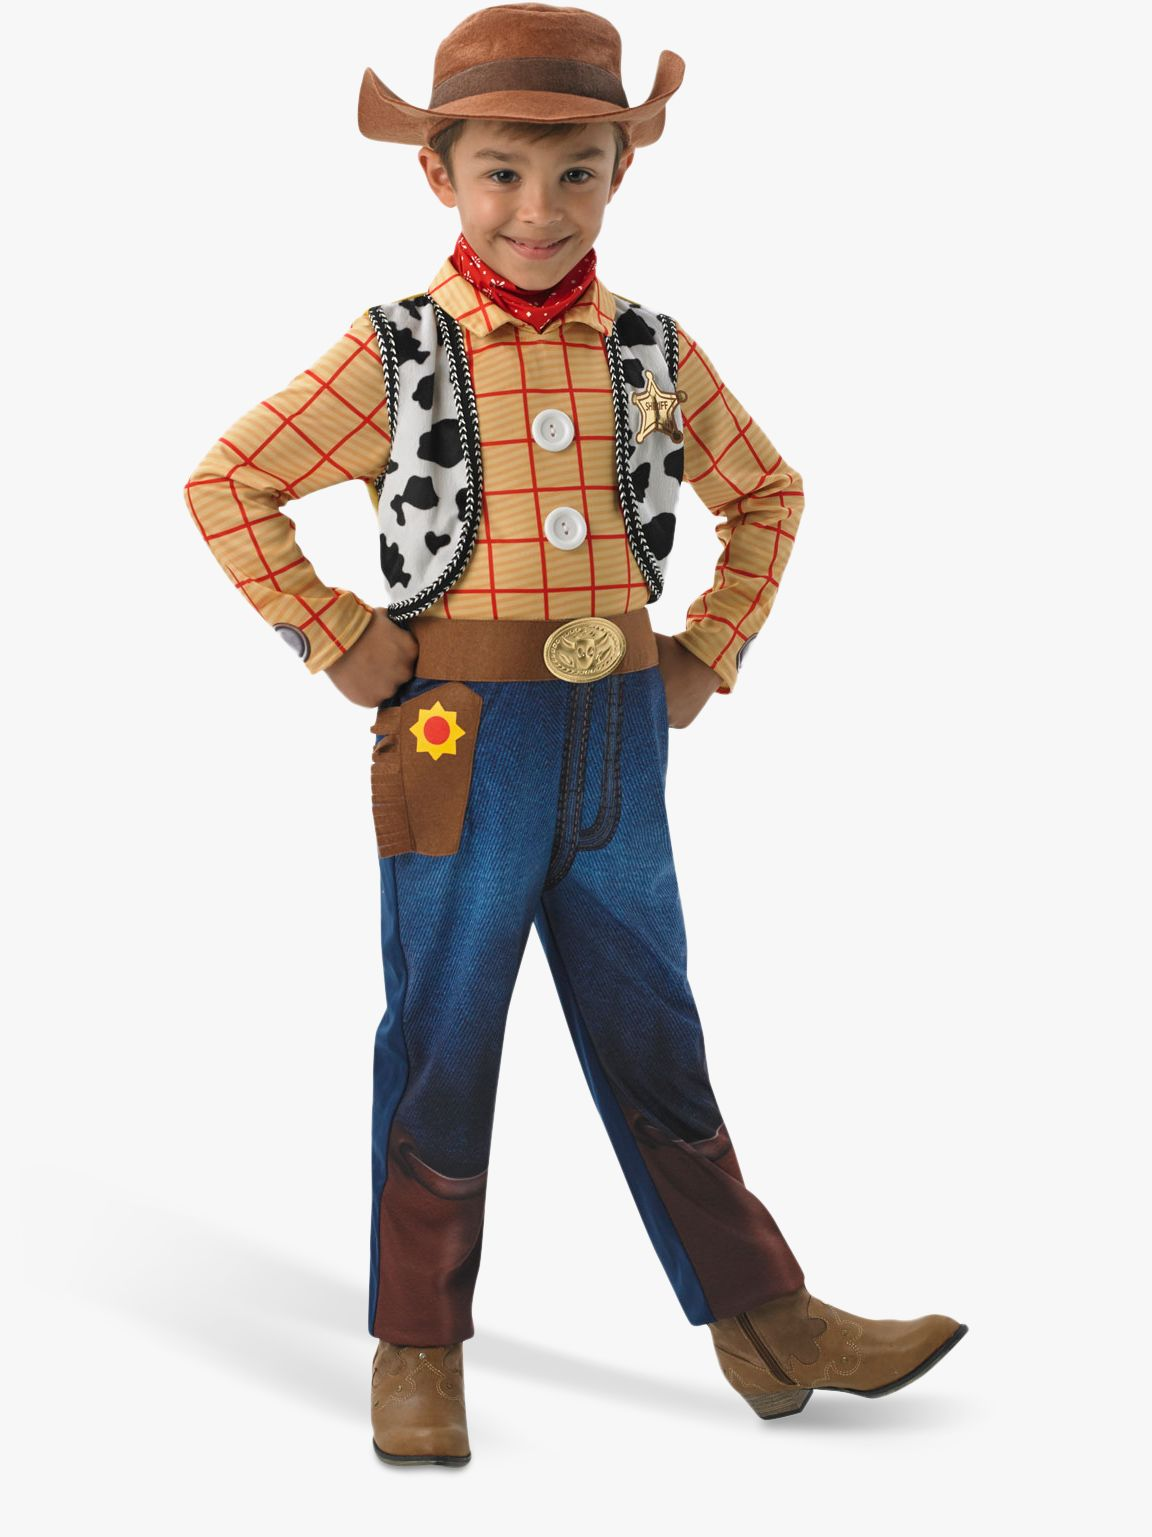 Rubies Toy Story Woody Deluxe Children's Costume, 5-6 years